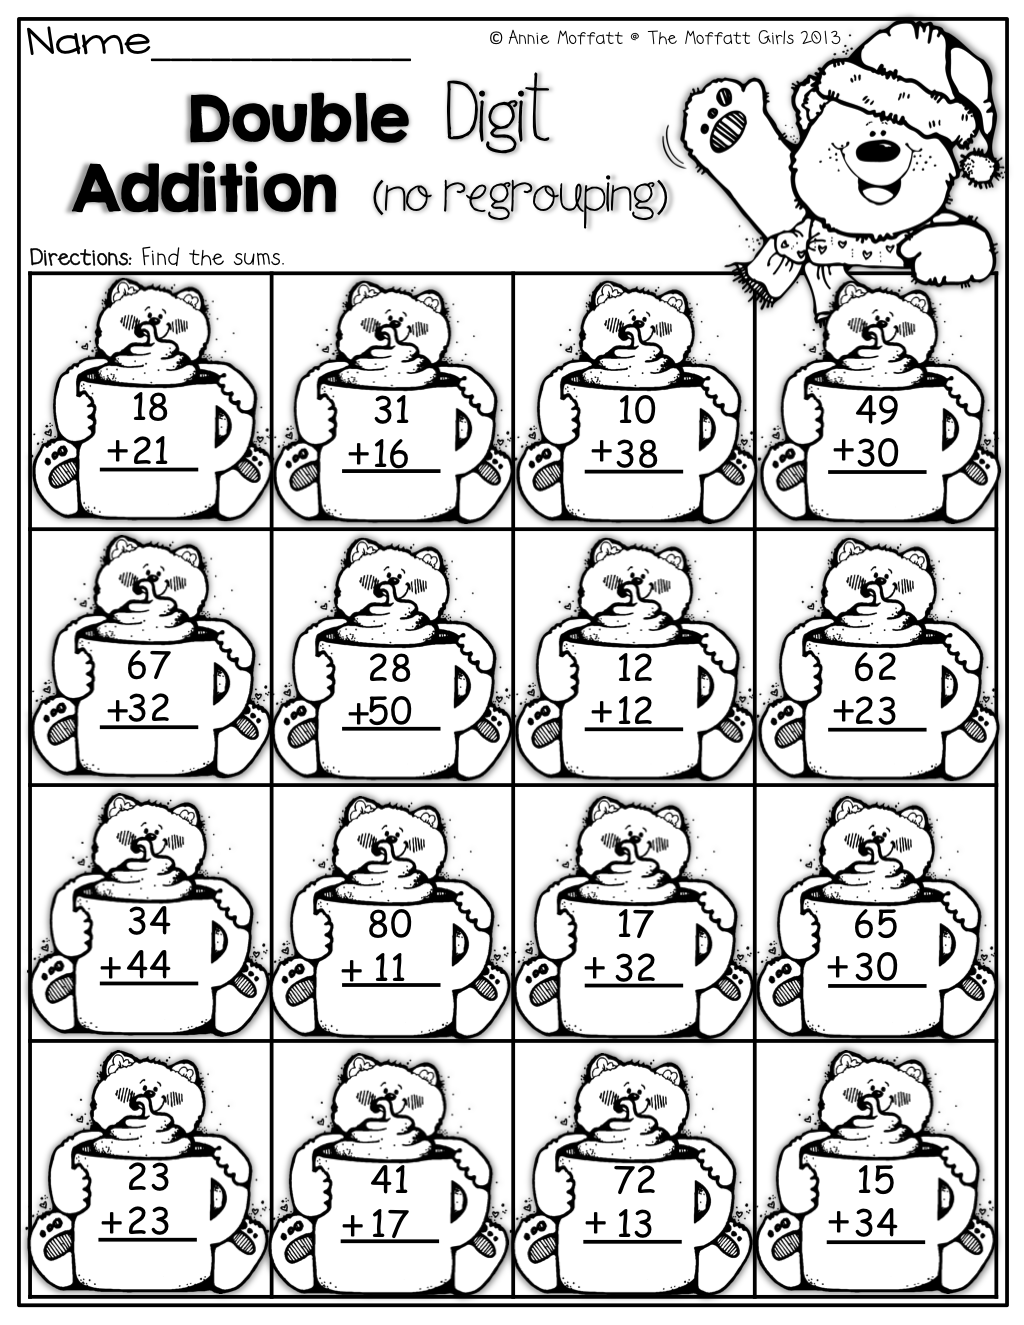 Coloring pages for double digit subtraction - 2 Double Digit Addition With No Regrouping Can Print Sheet In Picture As A Picture